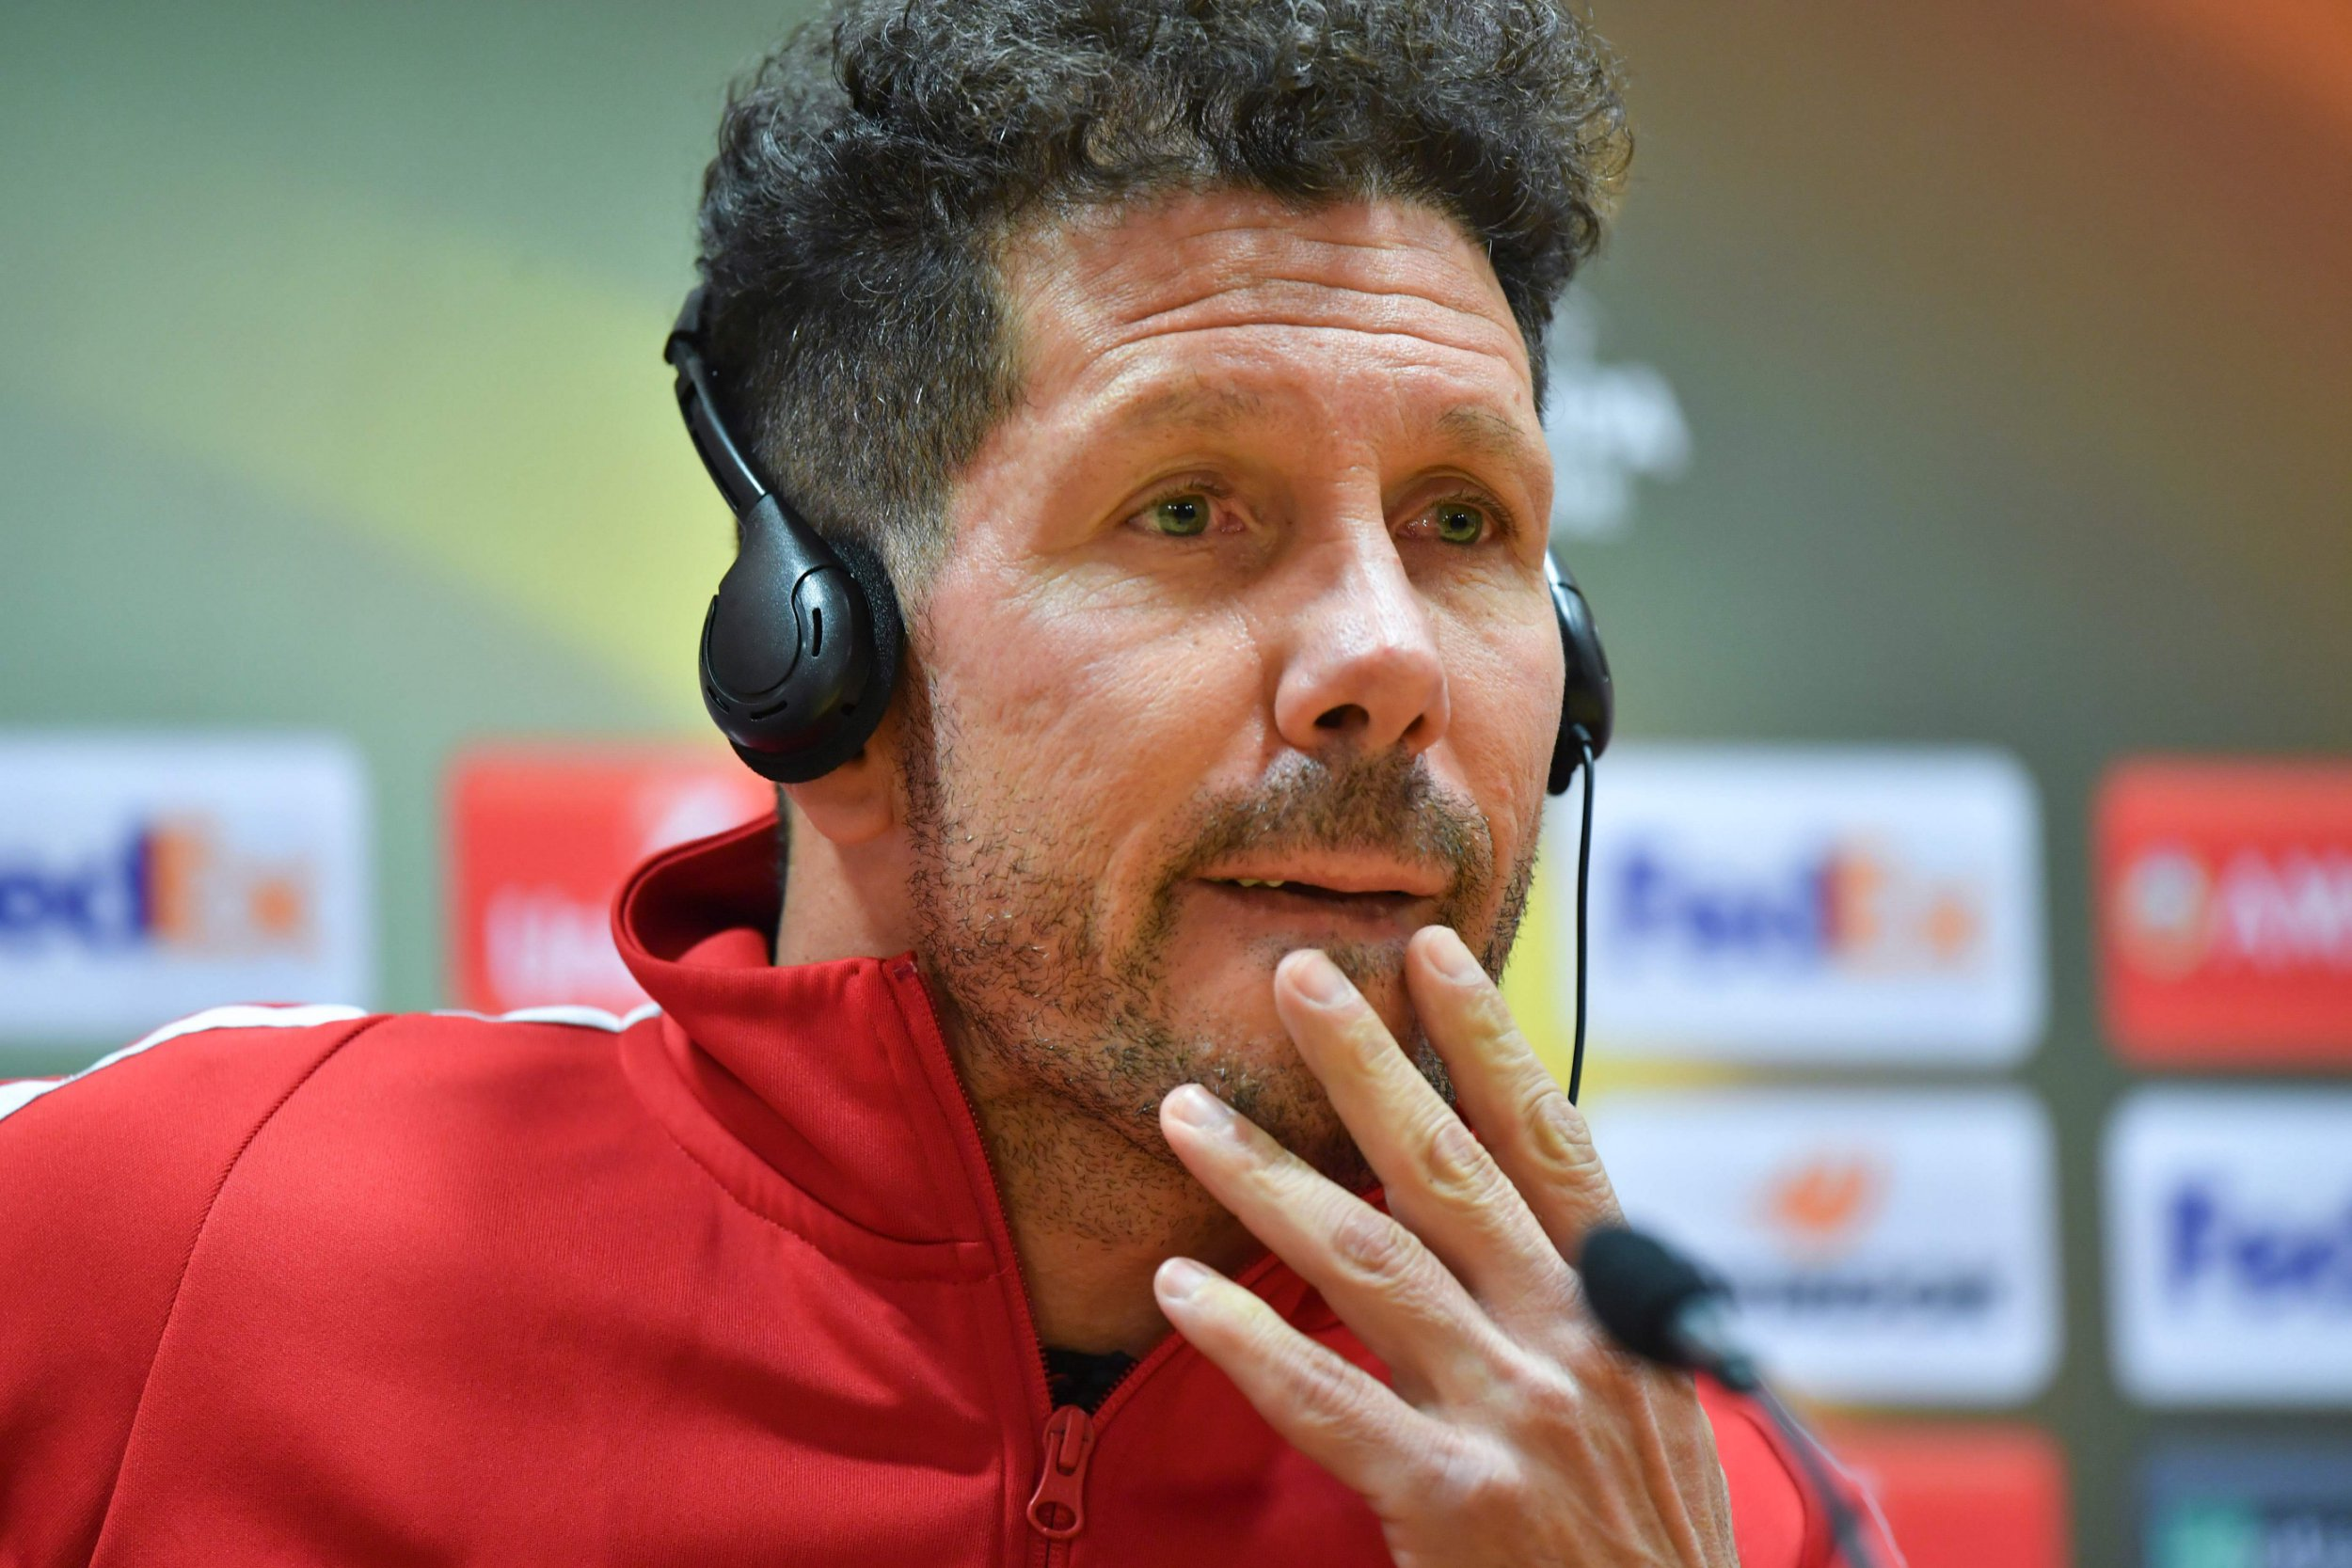 Atletico Madrid's Argentinian coach Diego Simeone listens during a press conference at the Emirates Stadium in London on April 25, 2018 on the eve of their UEFA Europa League first leg semi-final football match against Arsenal. / AFP PHOTO / Ben STANSALLBEN STANSALL/AFP/Getty Images